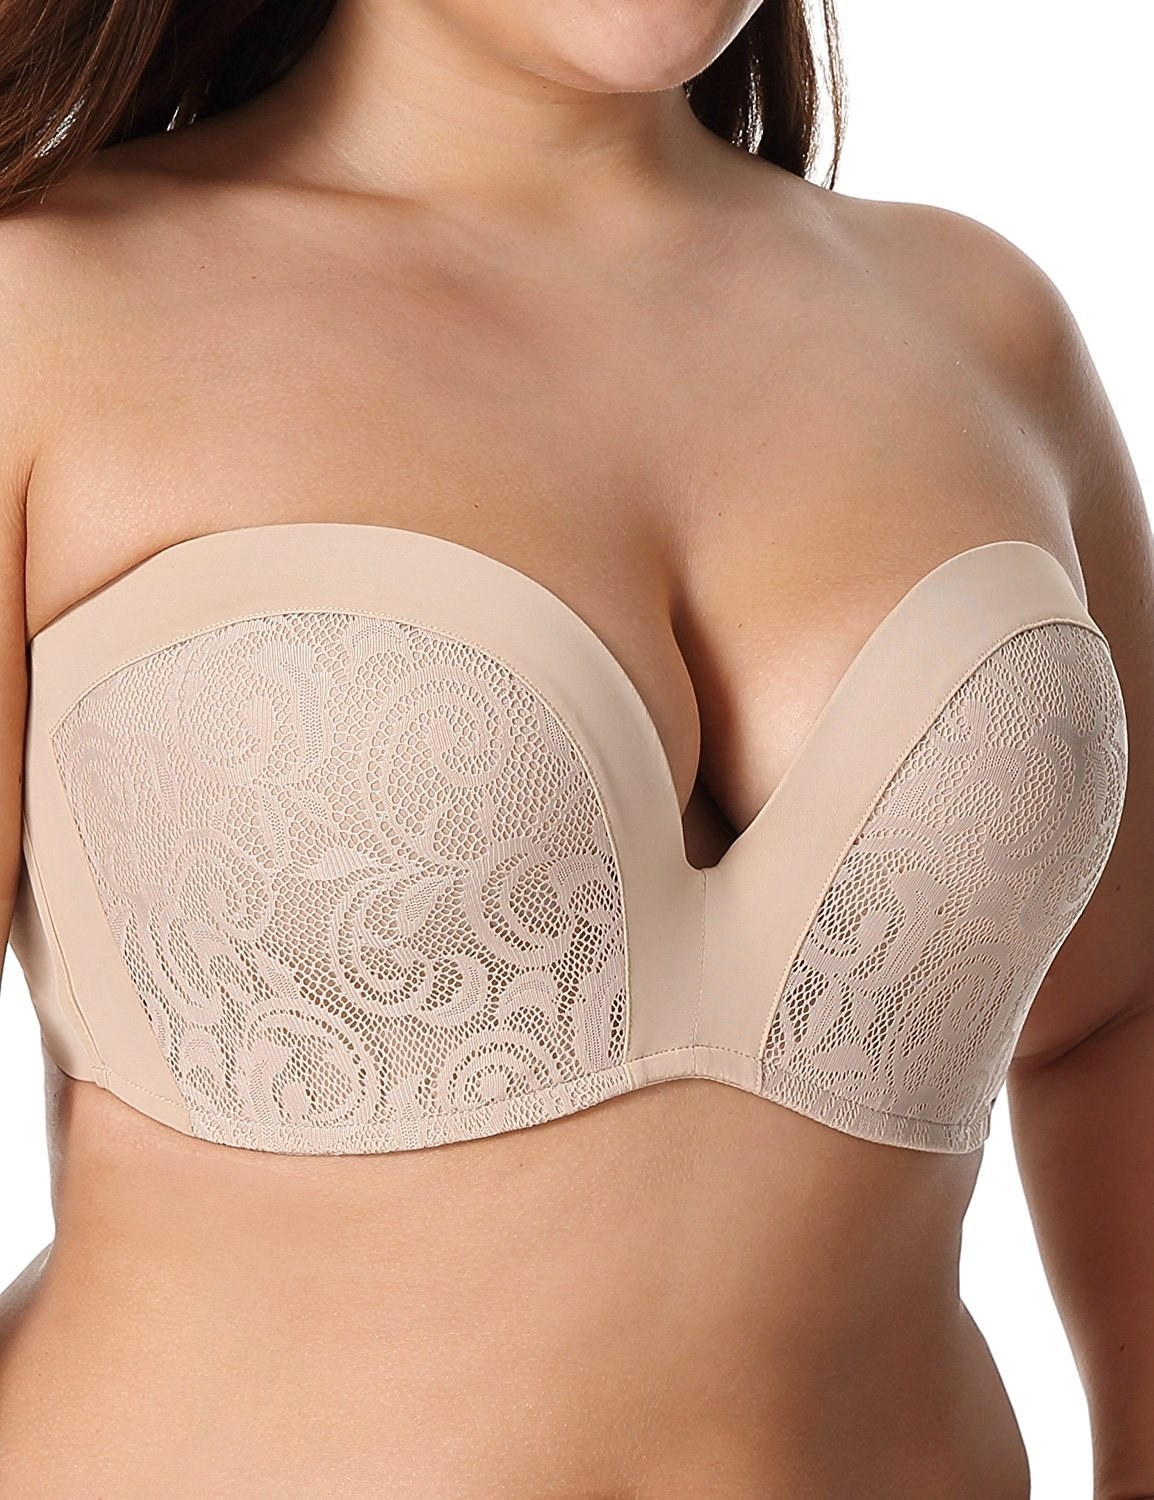 843f2b3740 28 Bras You Can Get On Amazon That People With Big Boobs Actually ...